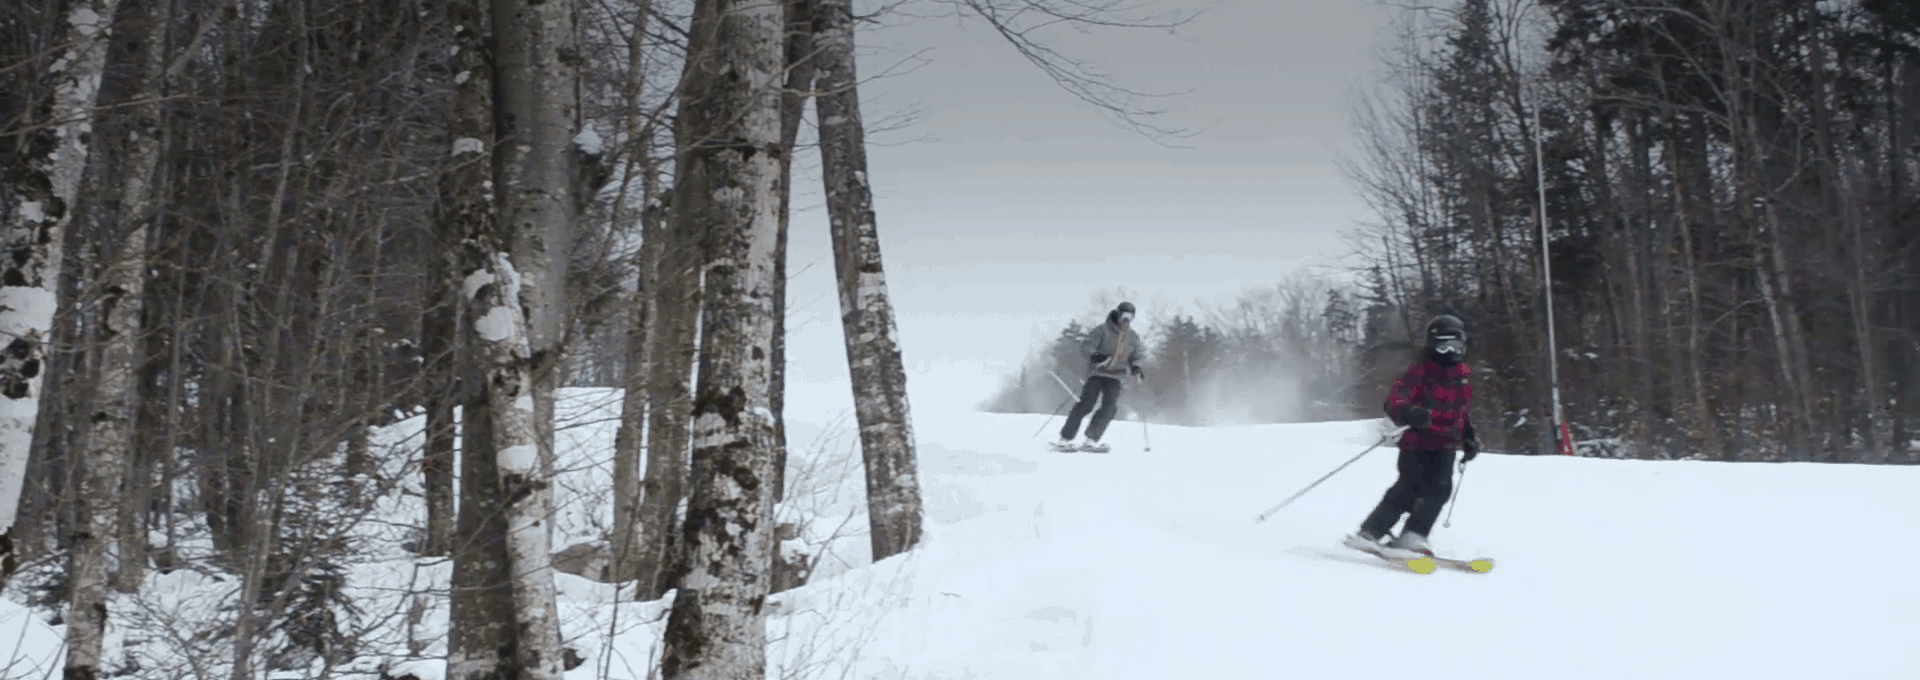 Downhill skiing in Northern NH